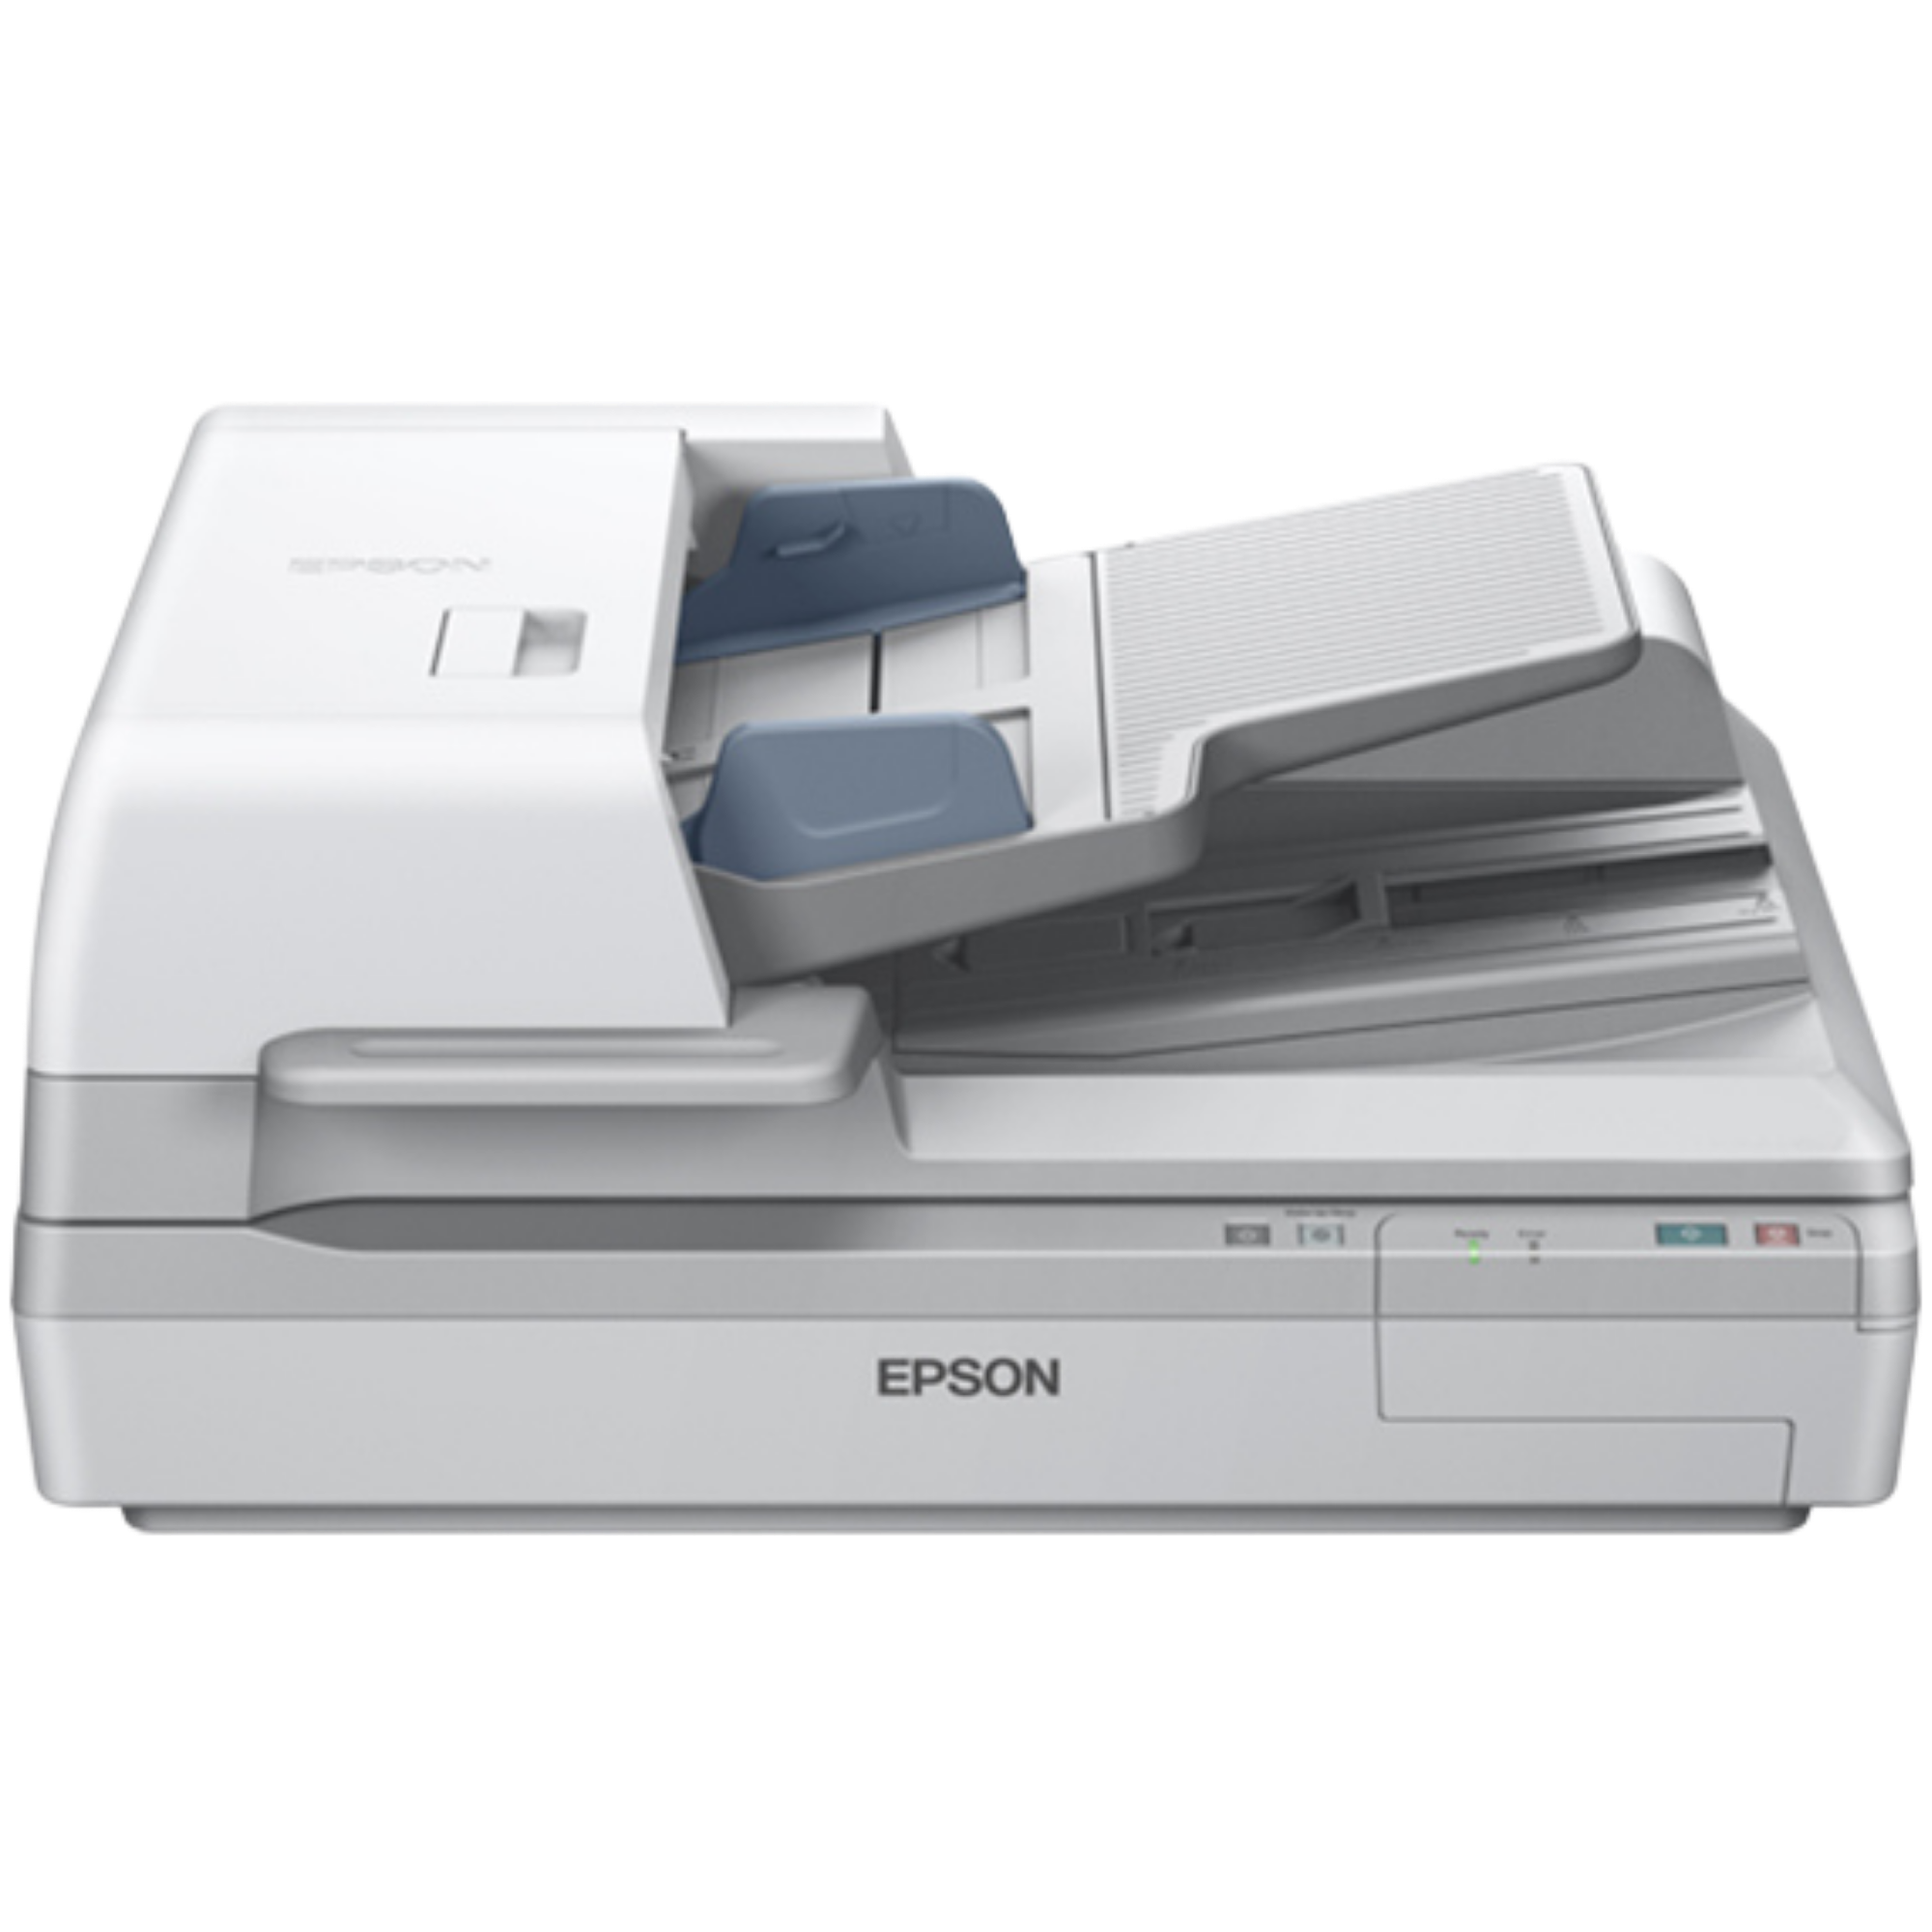 Epson DS-60000 40ppm 11.7x100